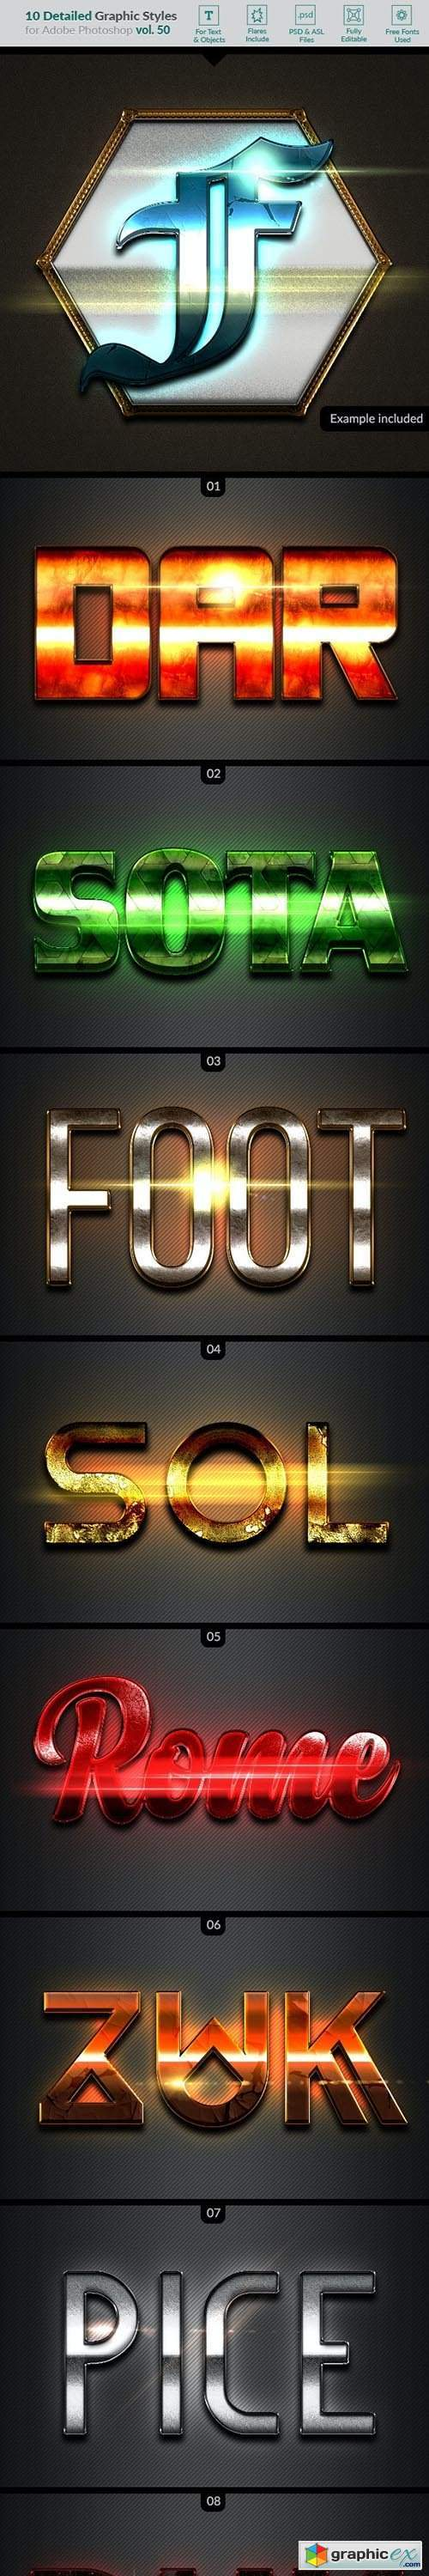 10 Text Effects Vol. 50